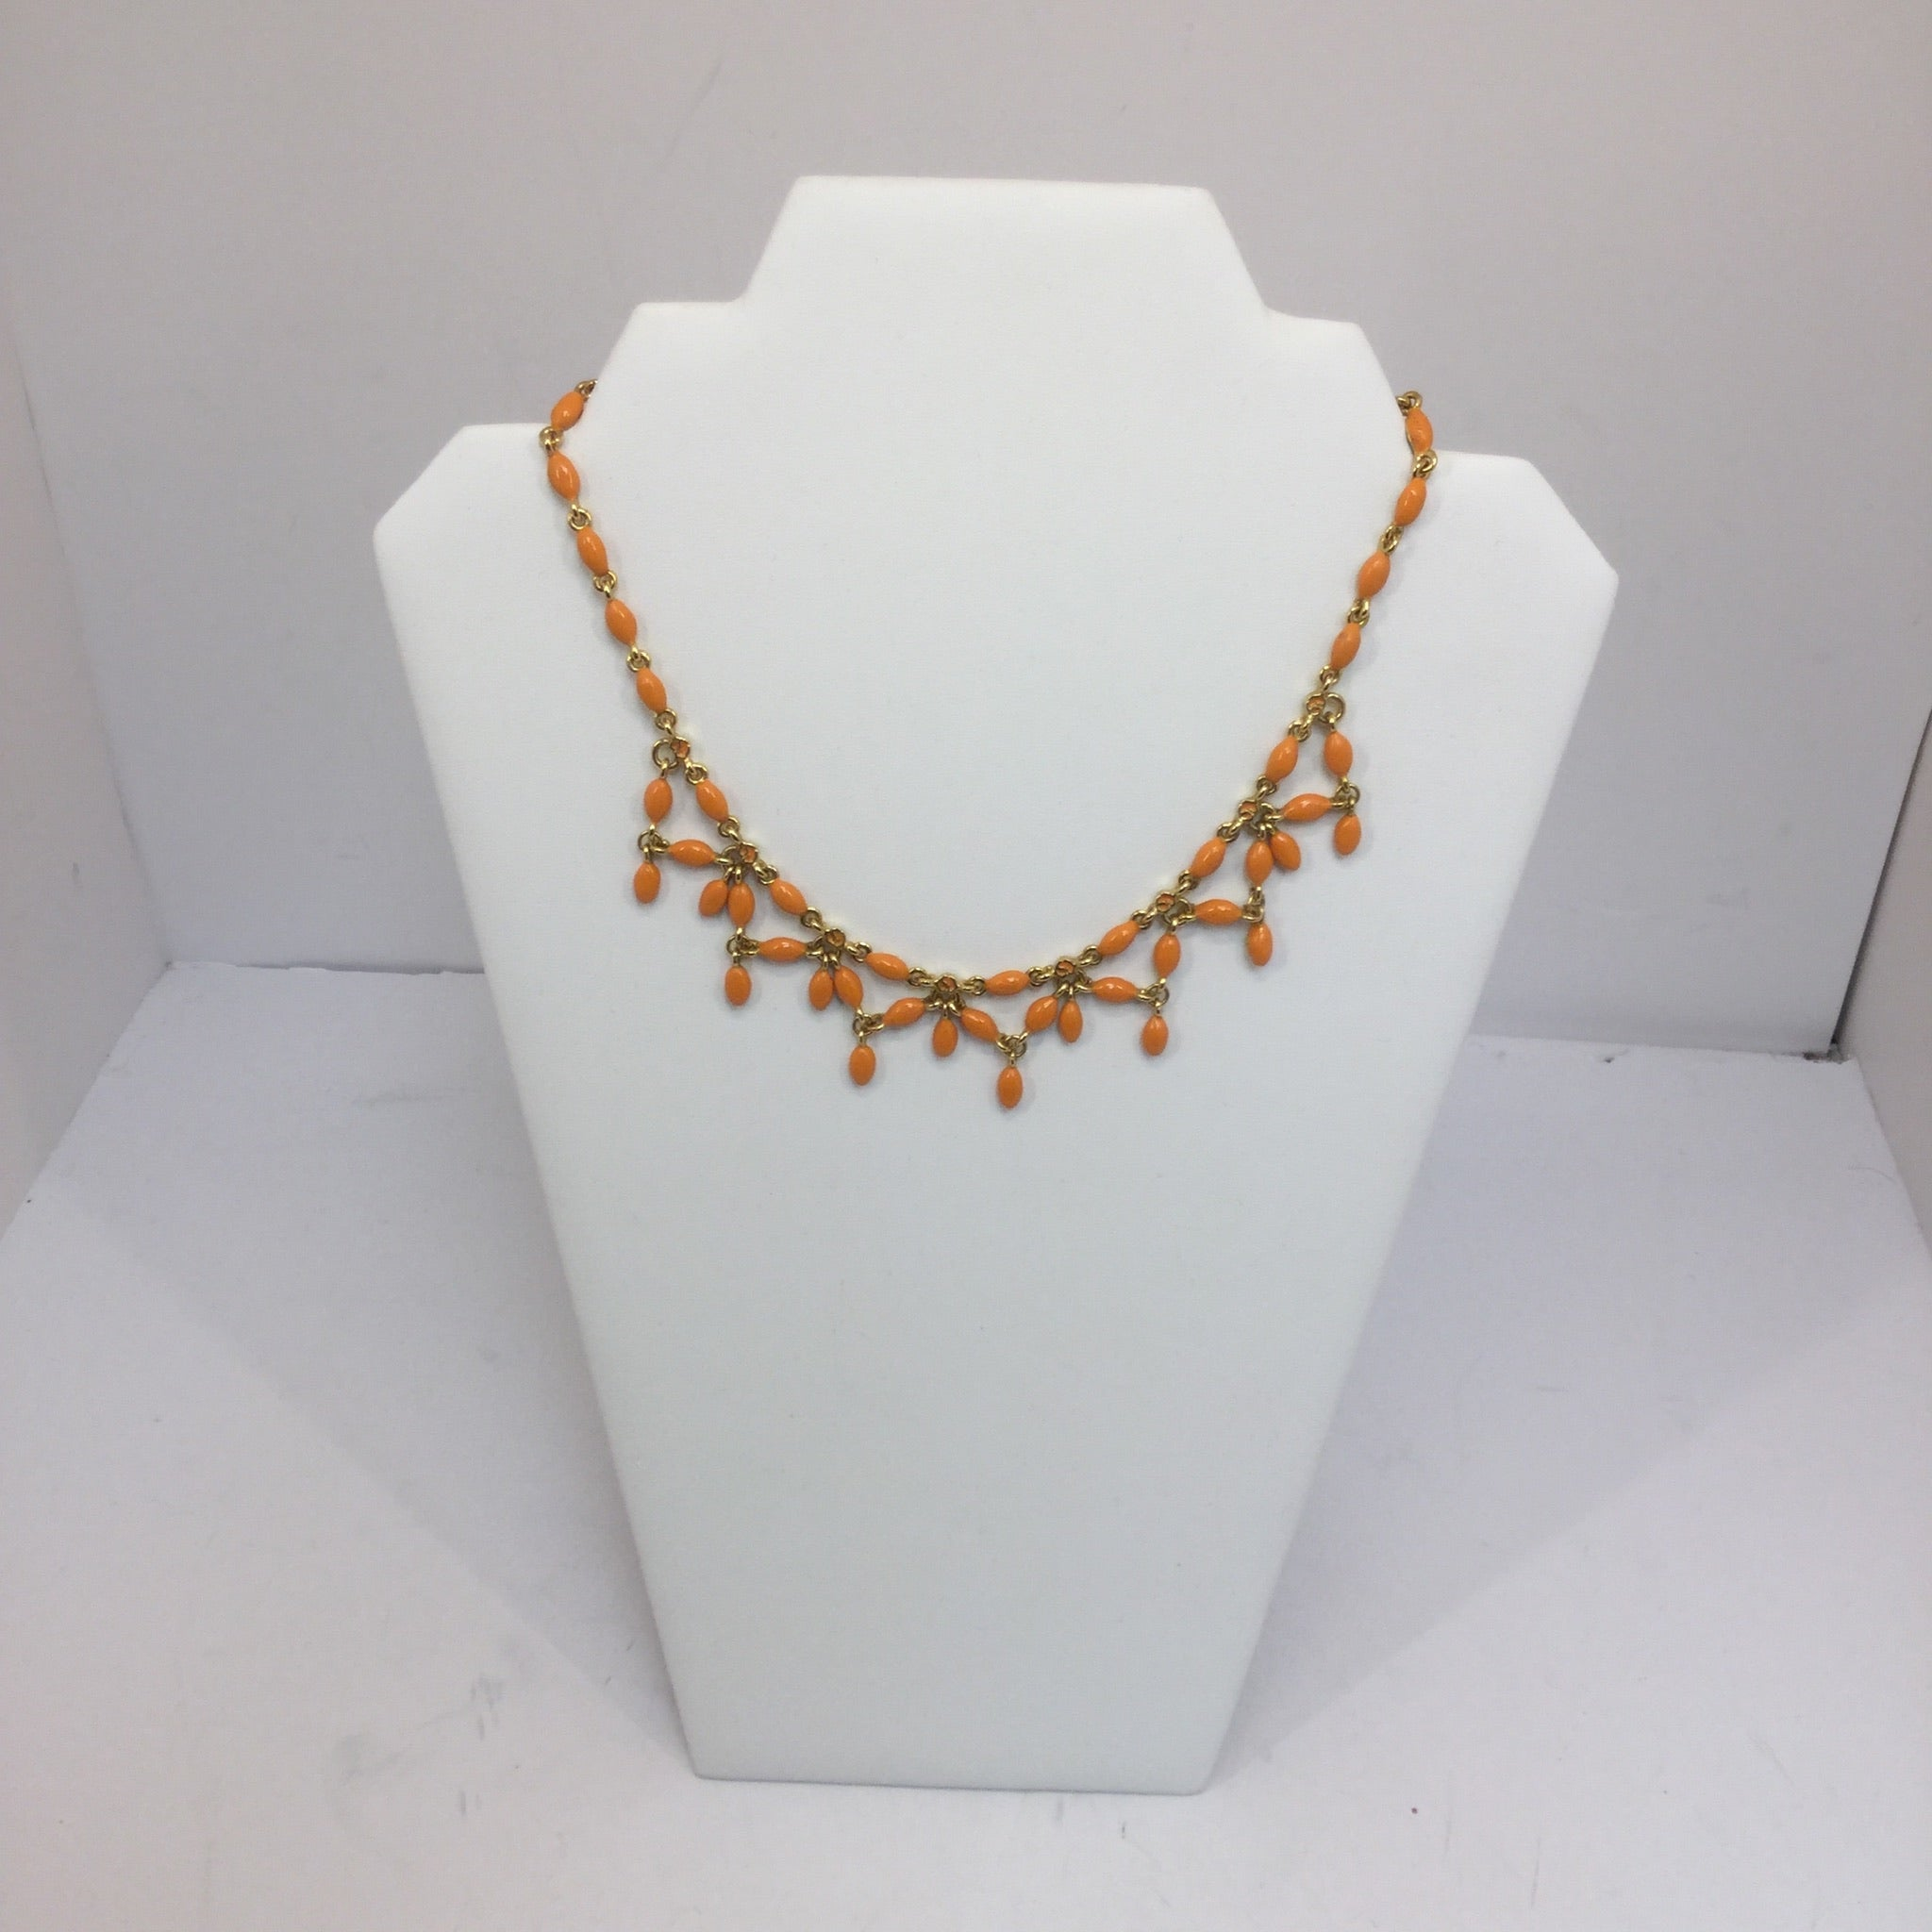 St. John Orange Chain + Enamel Necklace